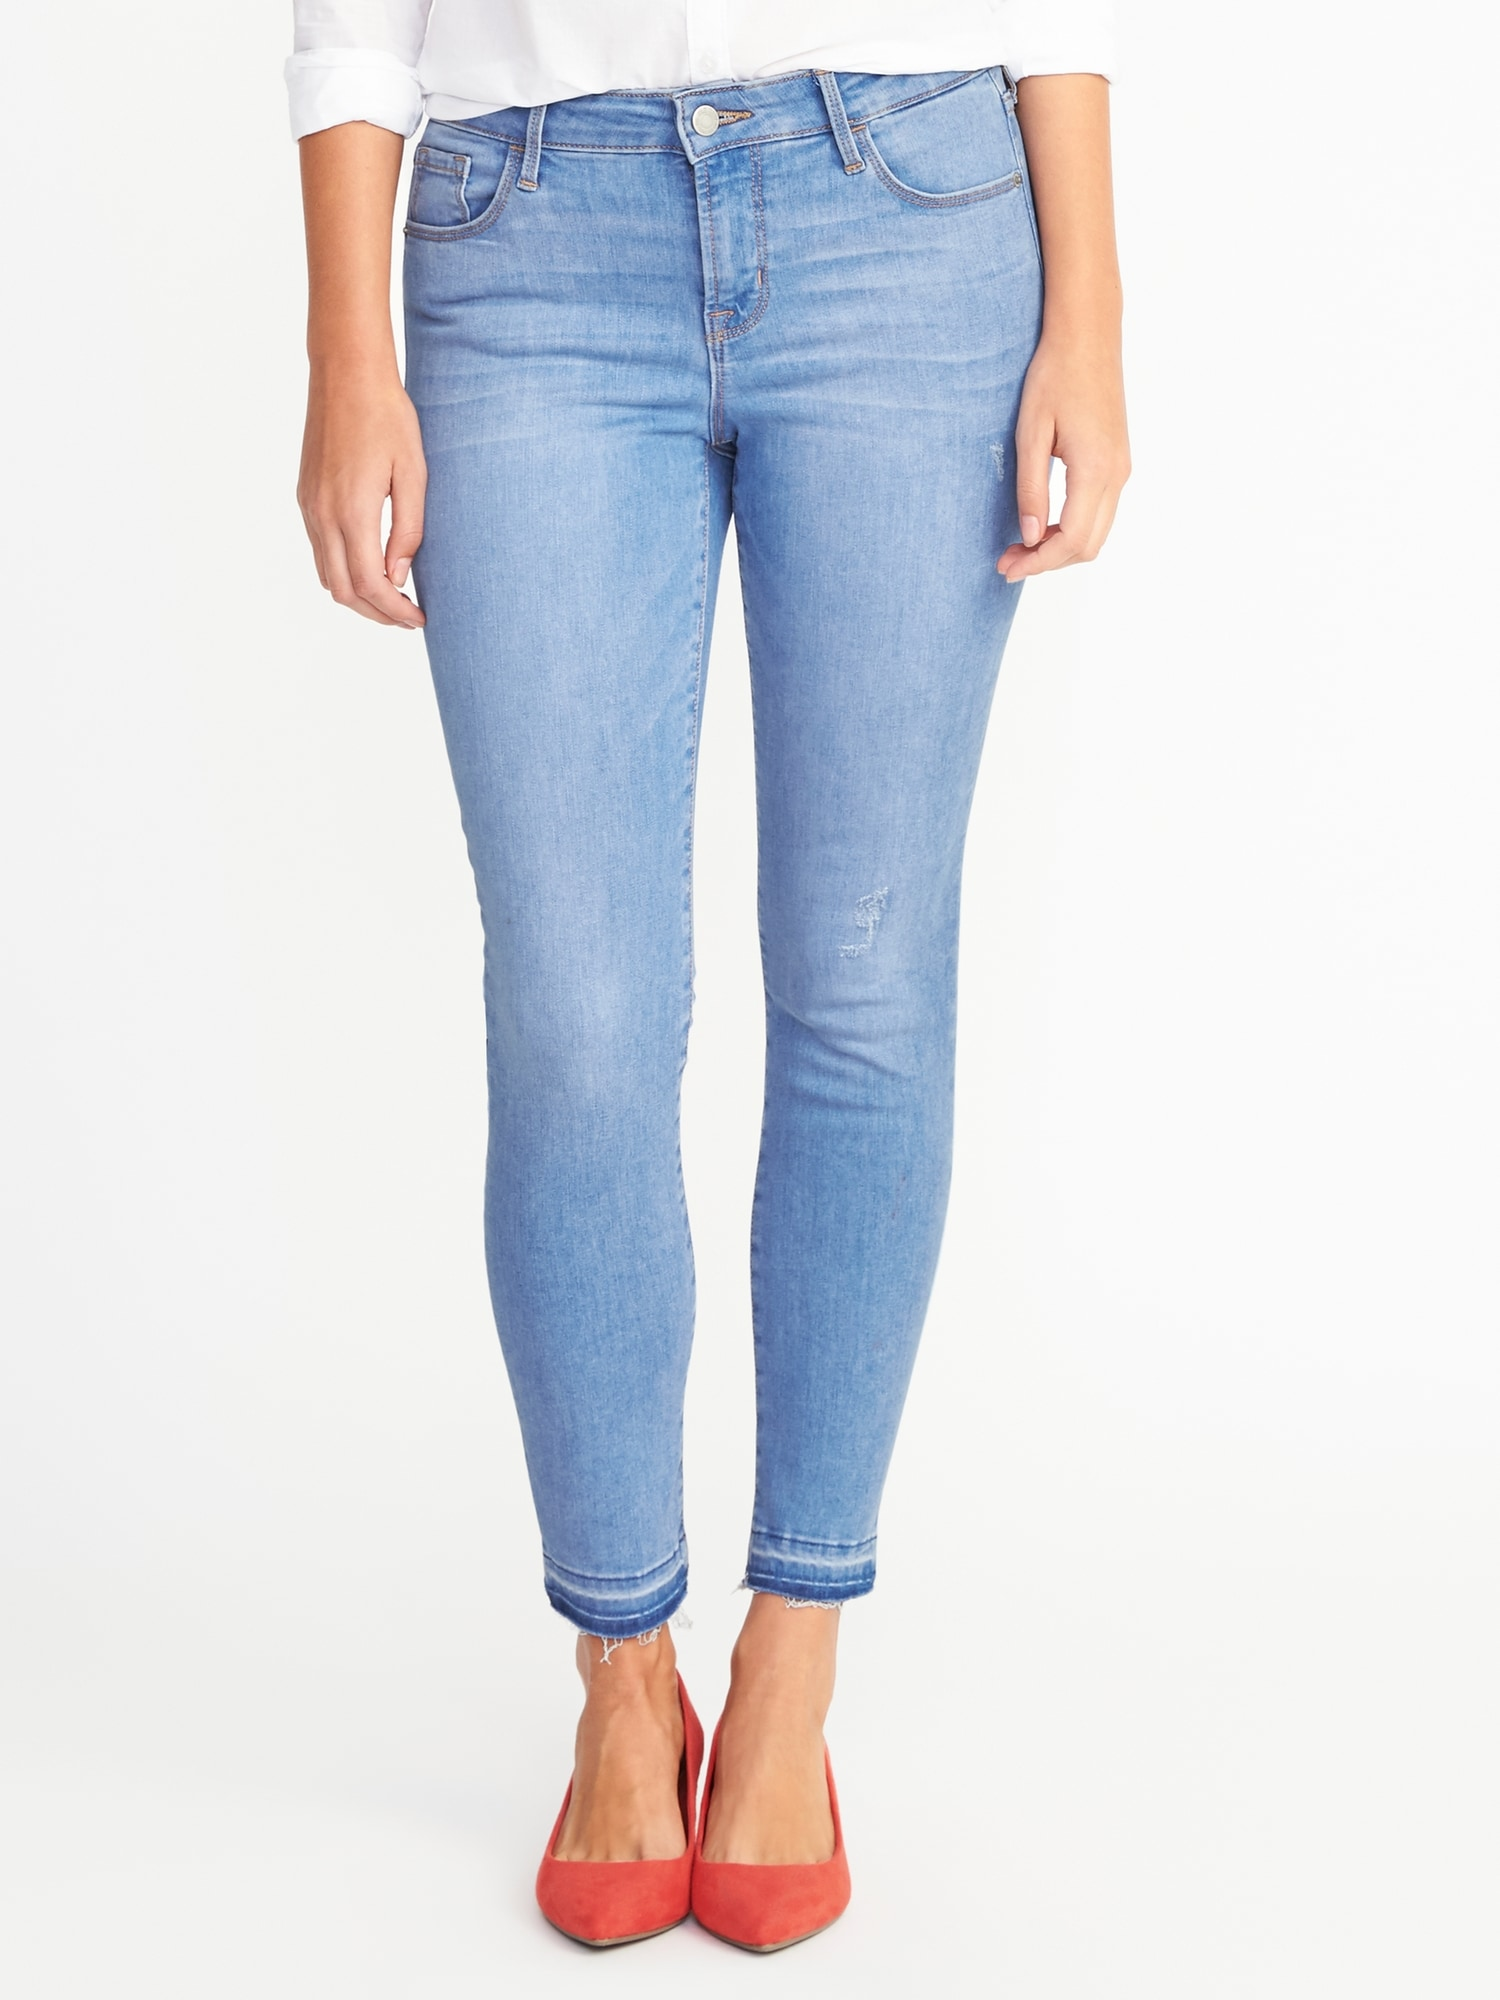 906663aeb69 Mid-Rise Built-In Sculpt Rockstar Ankle Jeans for Women